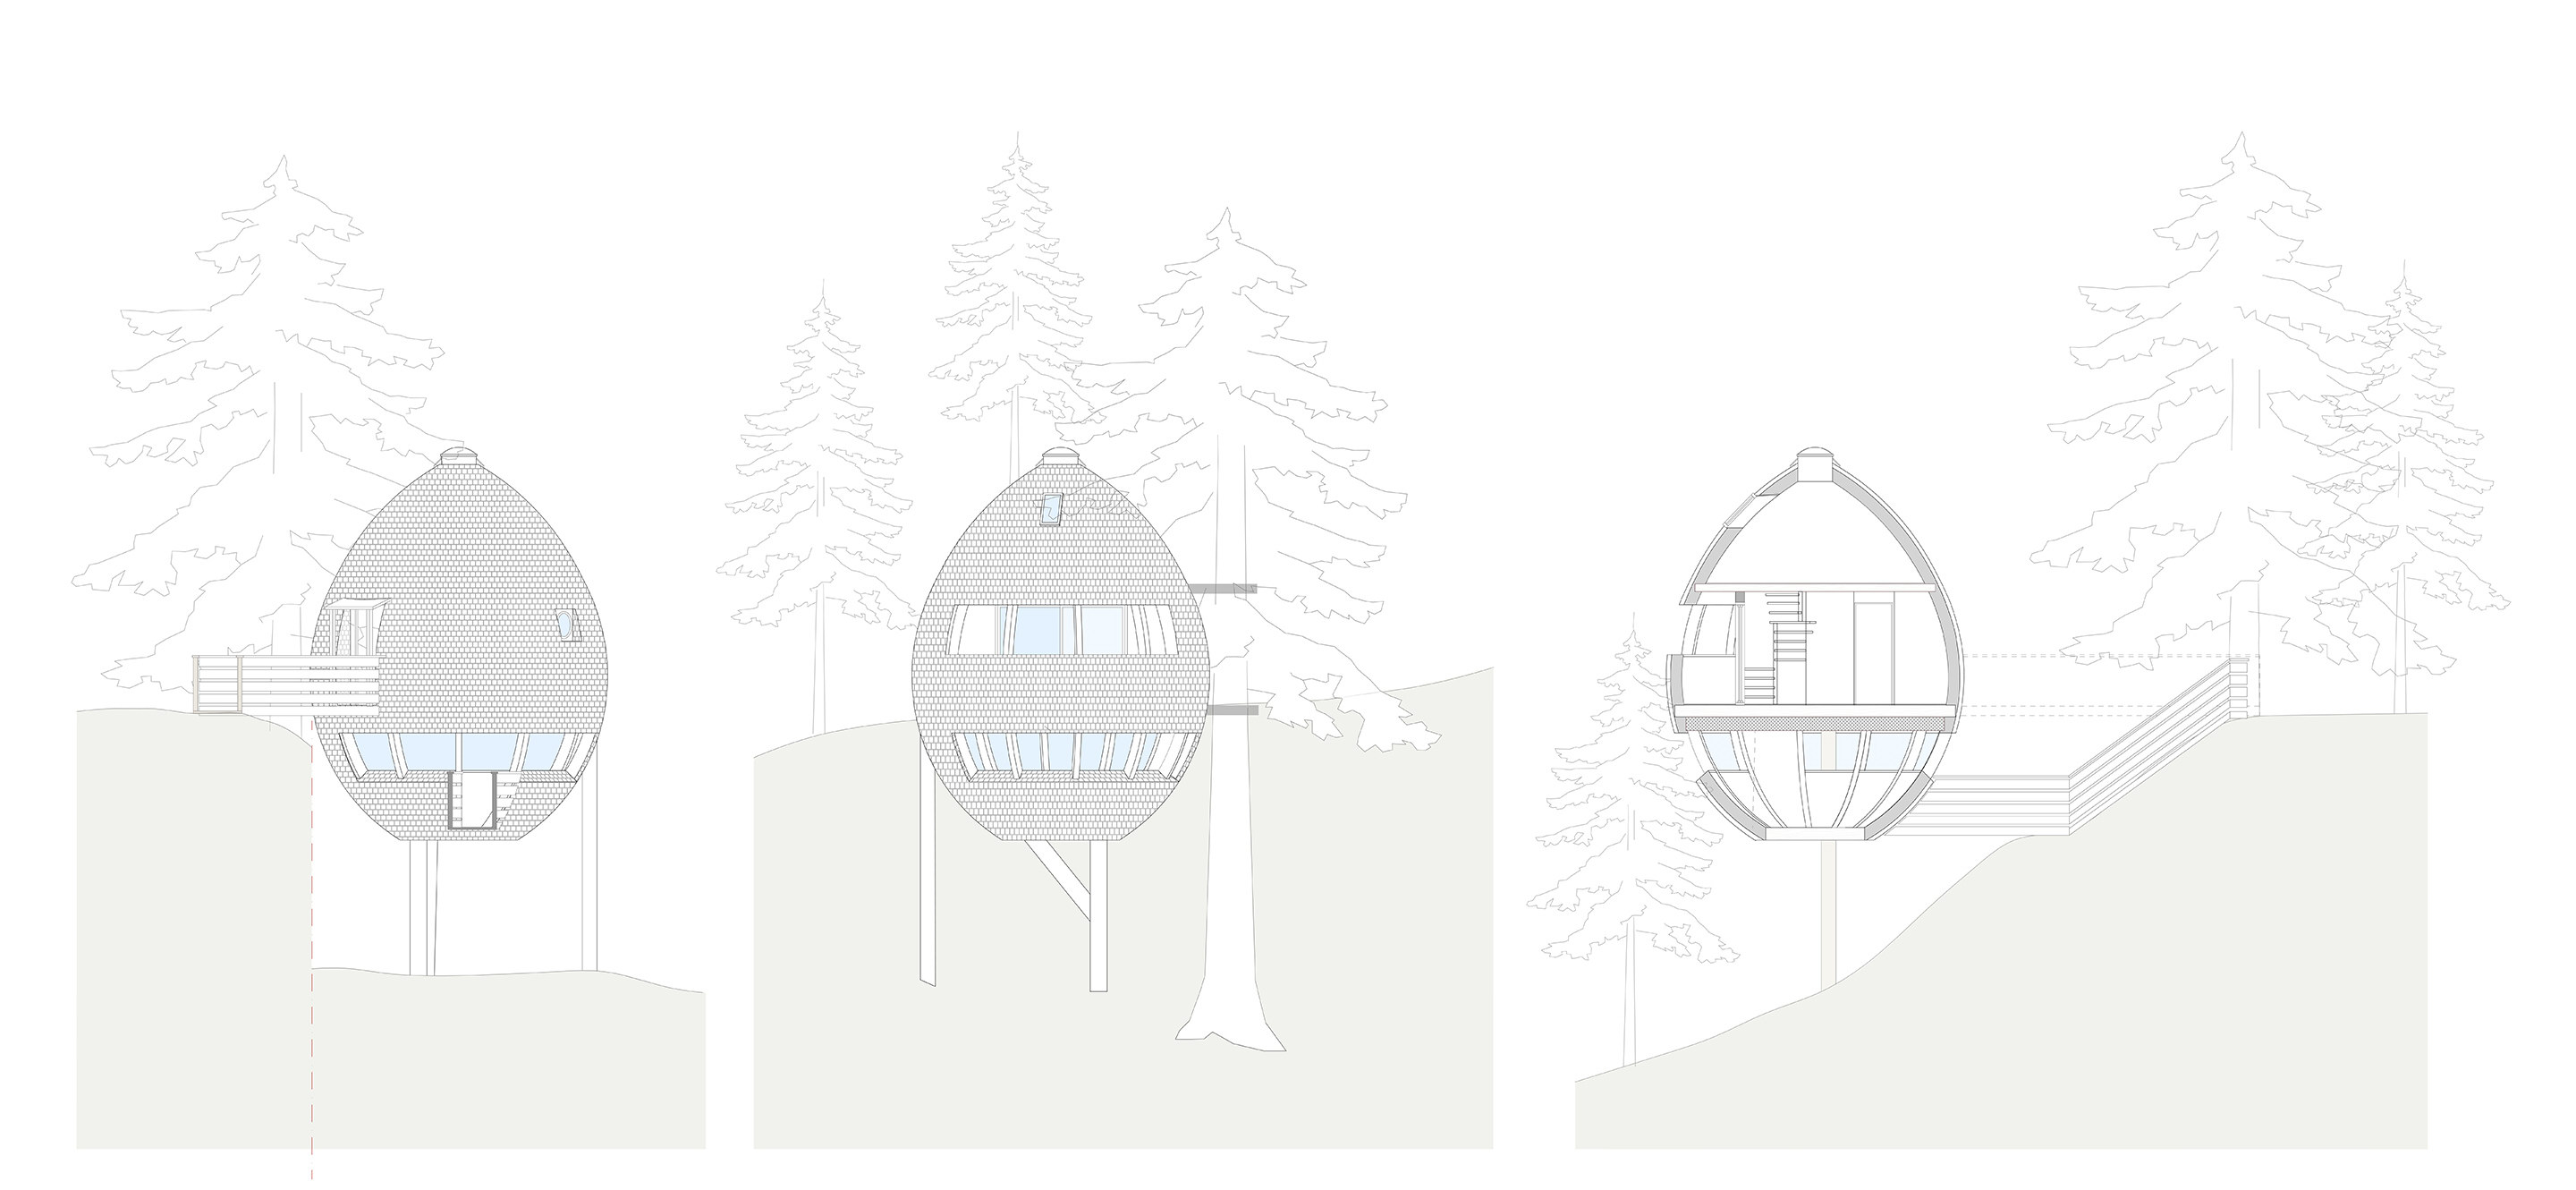 Pigna   Egg-Shaped Treehouses by Architetto Beltrame Claudio